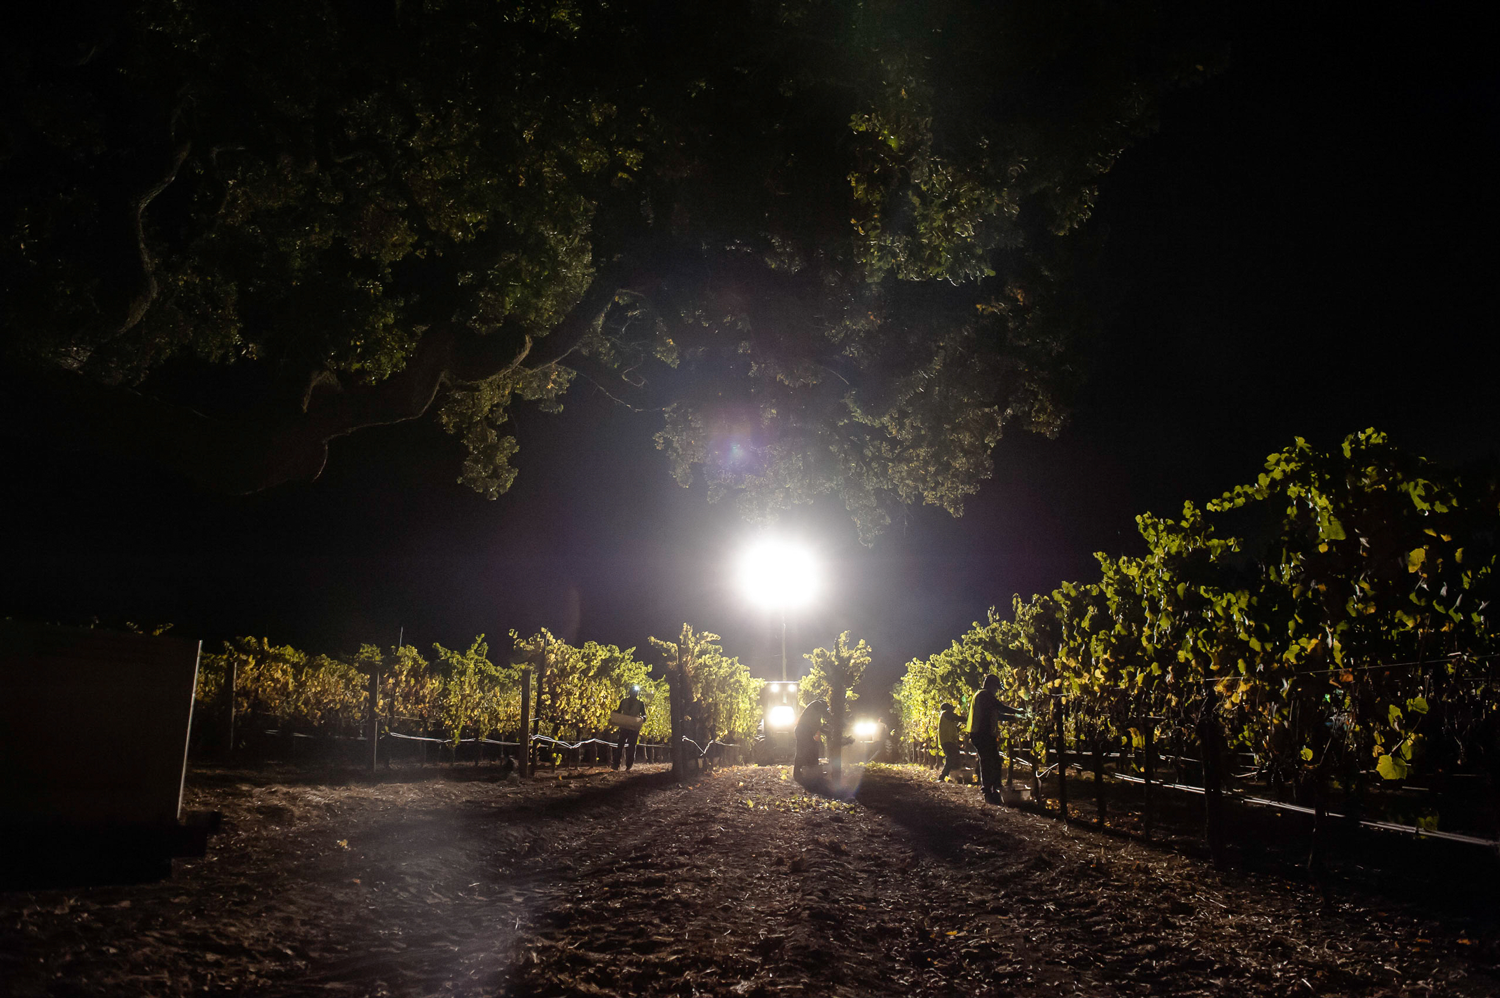 Vineyard_workers_hand_picking_grapes_at_night_under_light.png